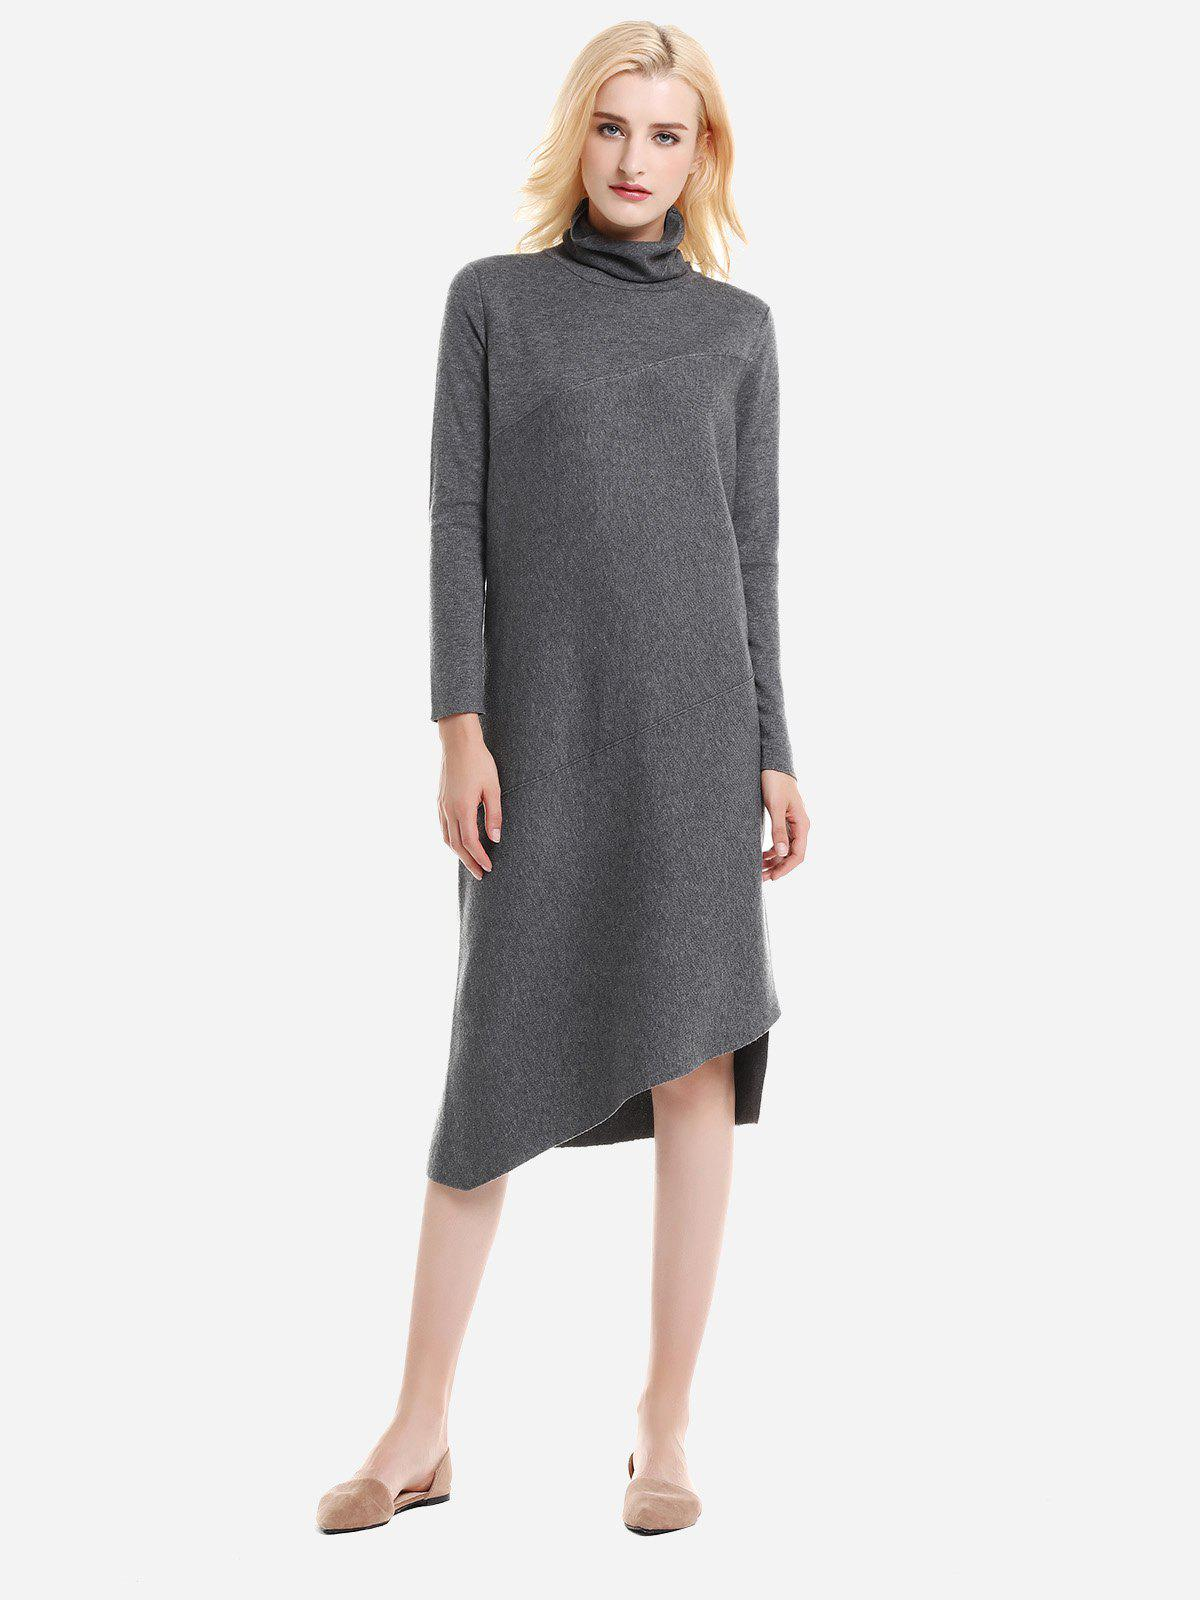 Shops Turtleneck Collar Dress